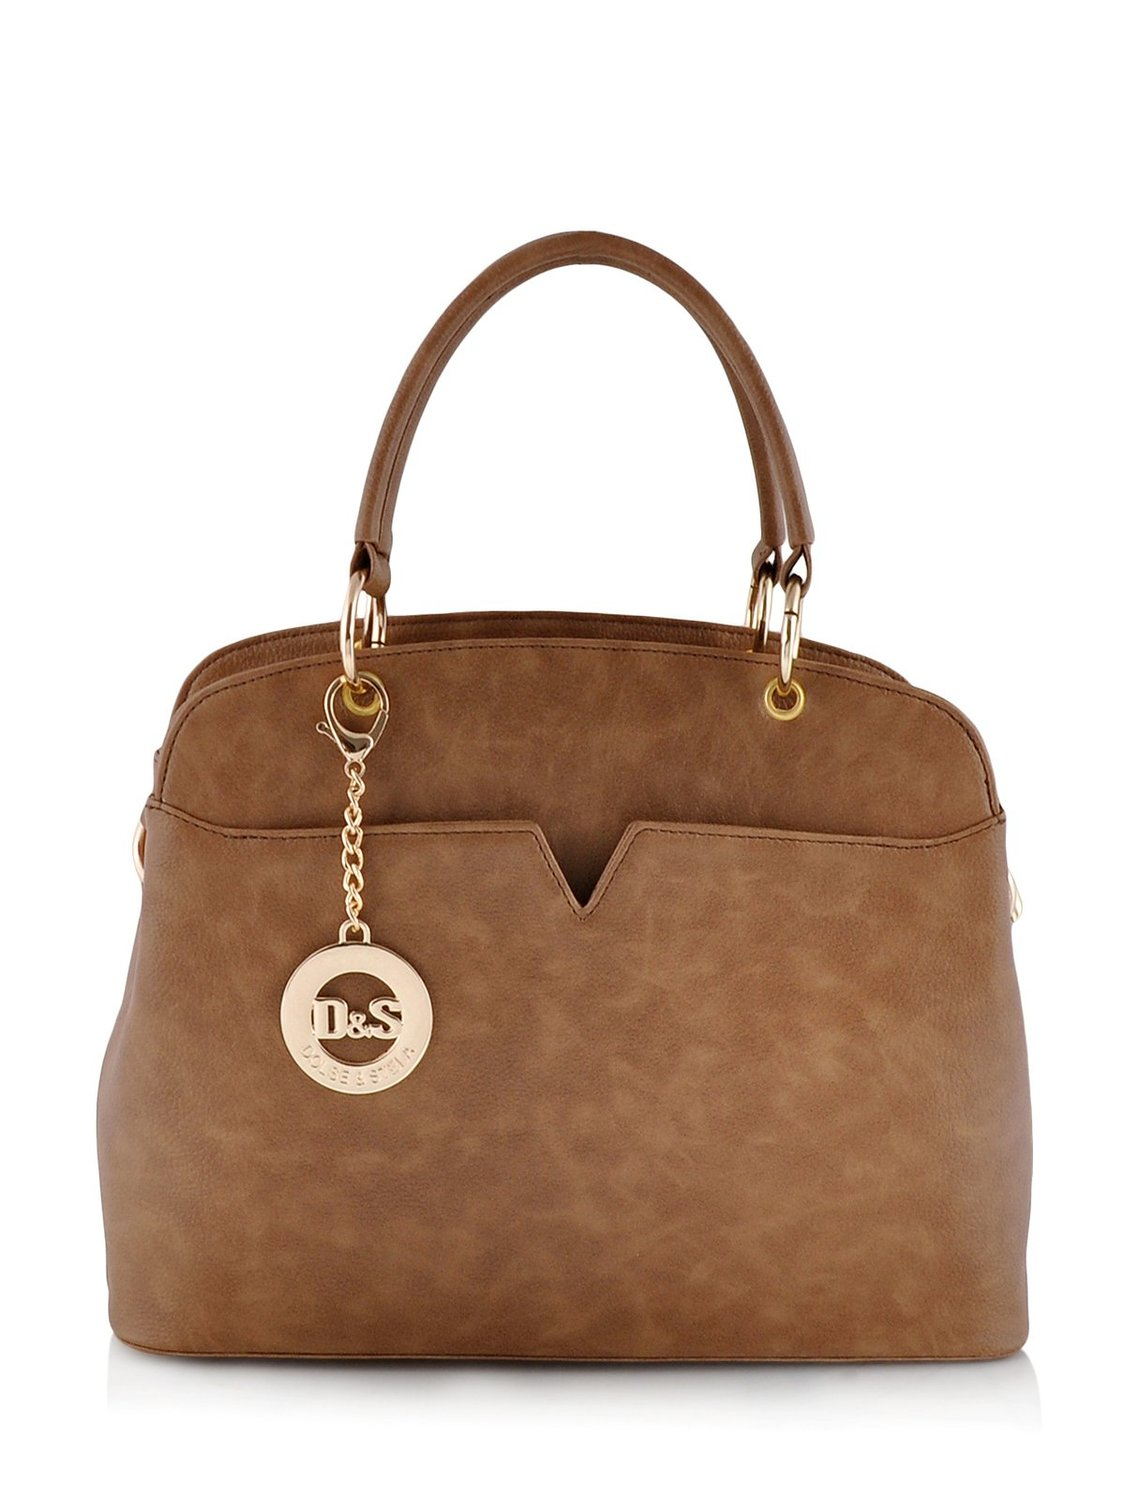 Trendy Brown Handbag